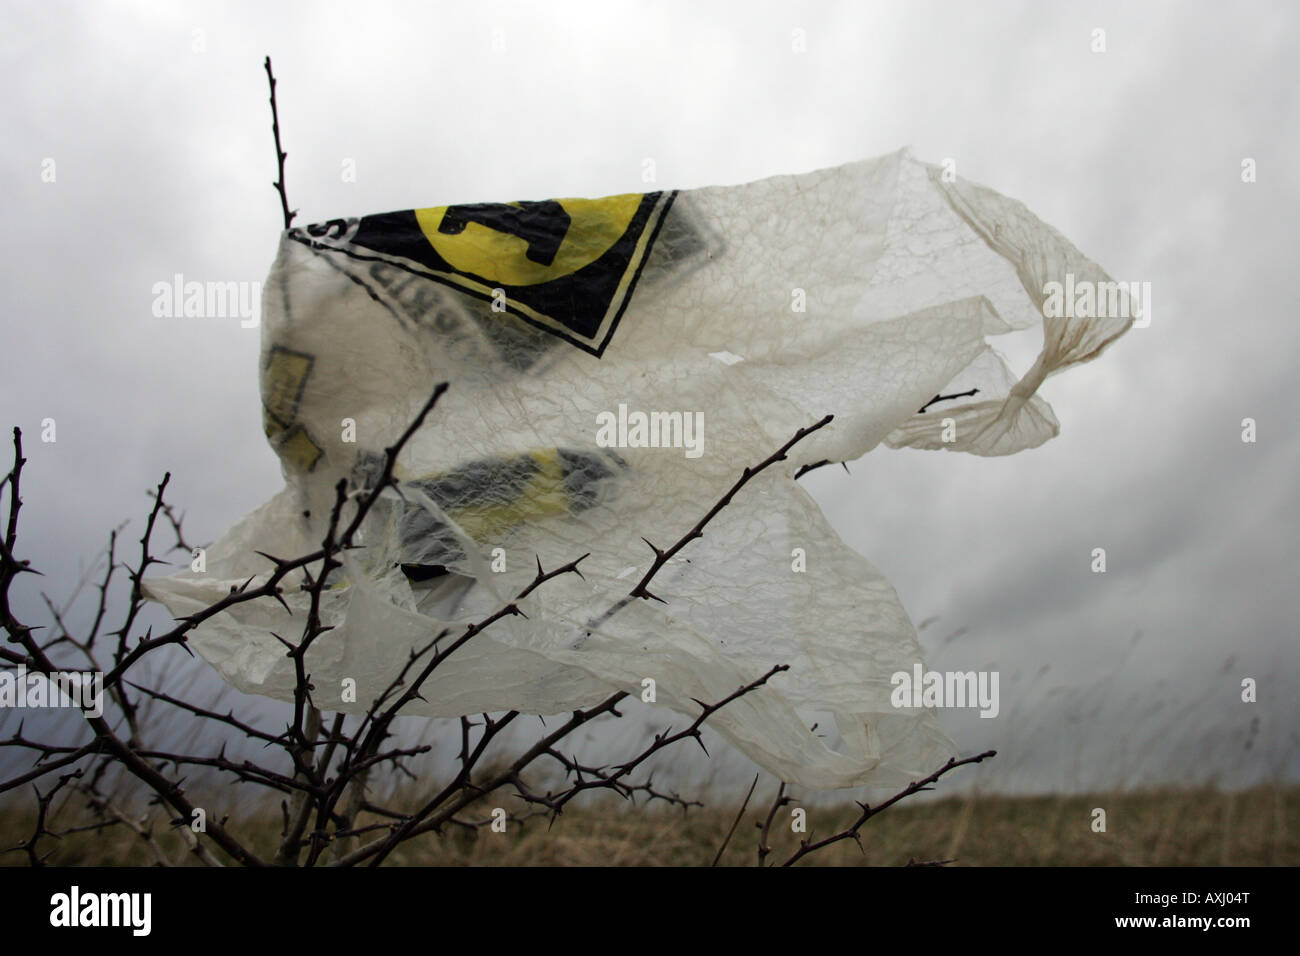 A carrier bag blown from a land fill site at Seal Sands near Midllesbrough Cleveland UK - Stock Image